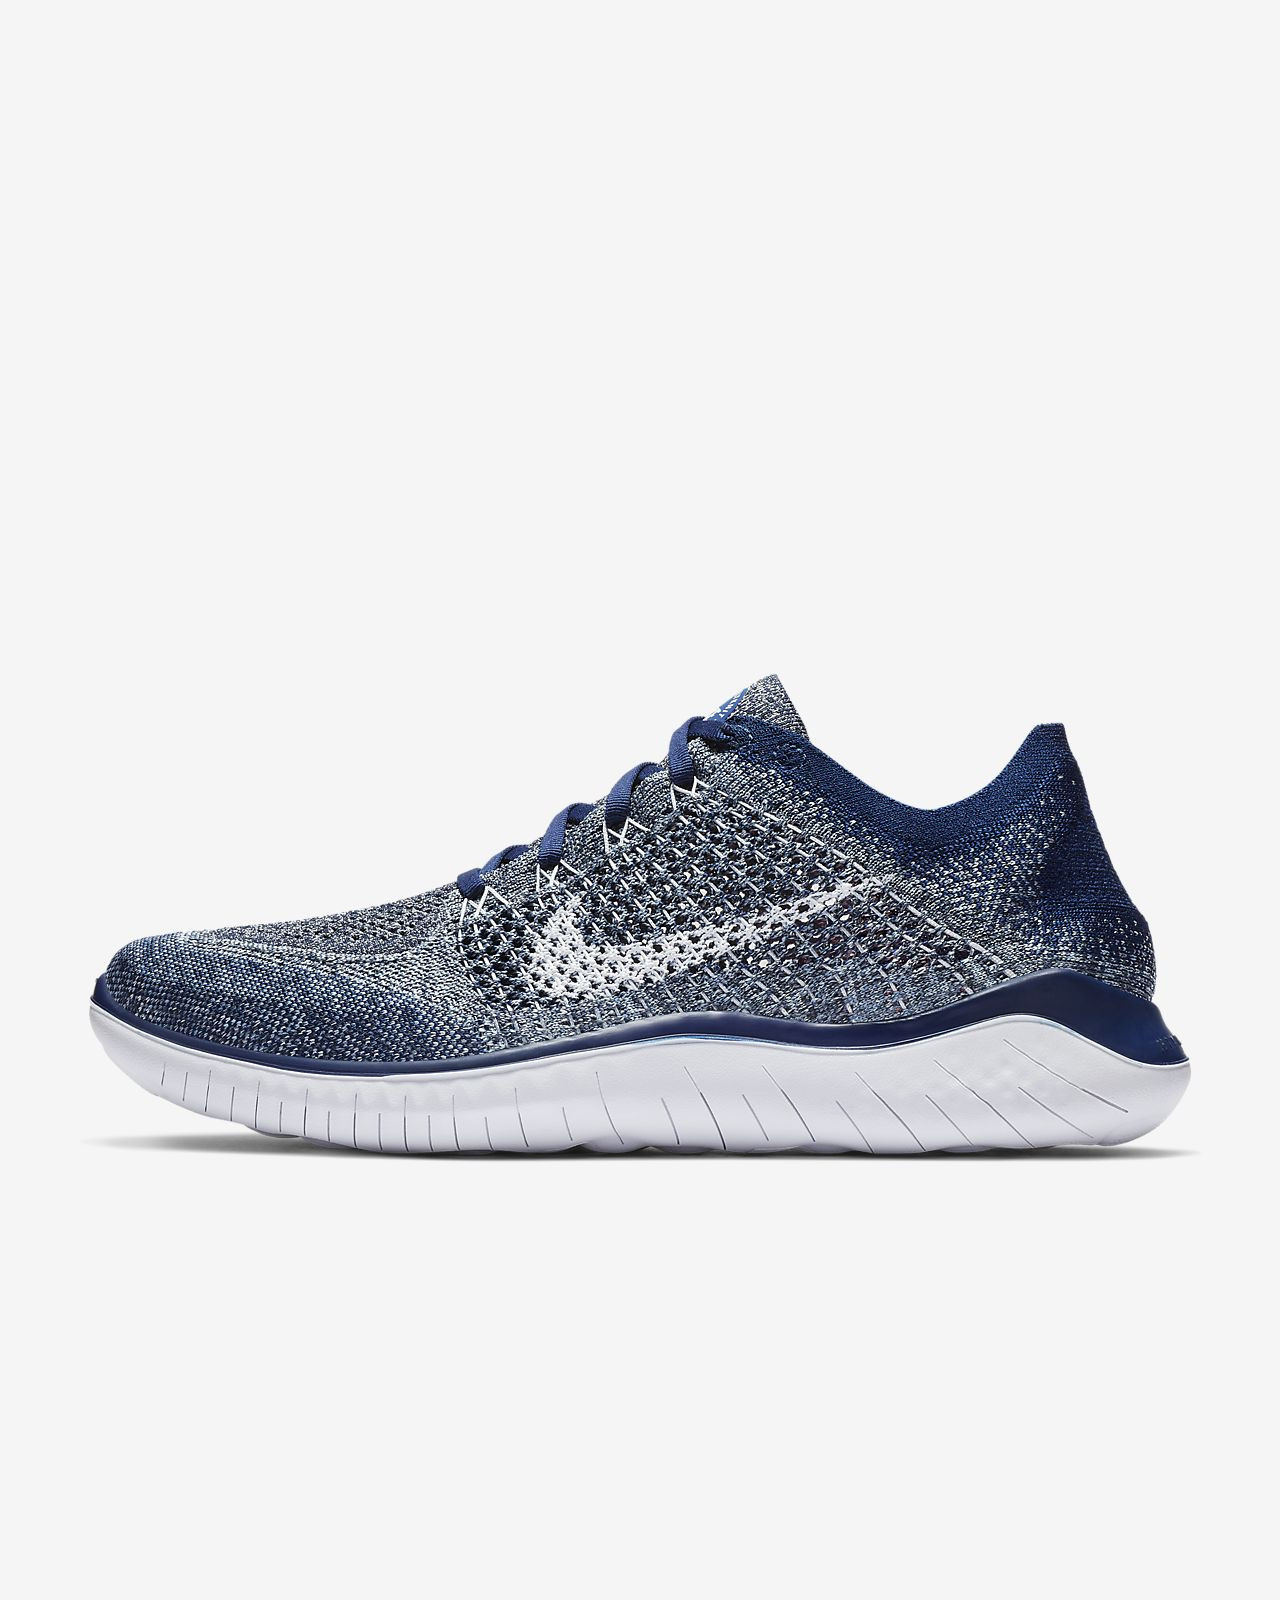 brand new 5e039 7c6c7 Men s Running Shoe. Nike Free RN Flyknit 2018